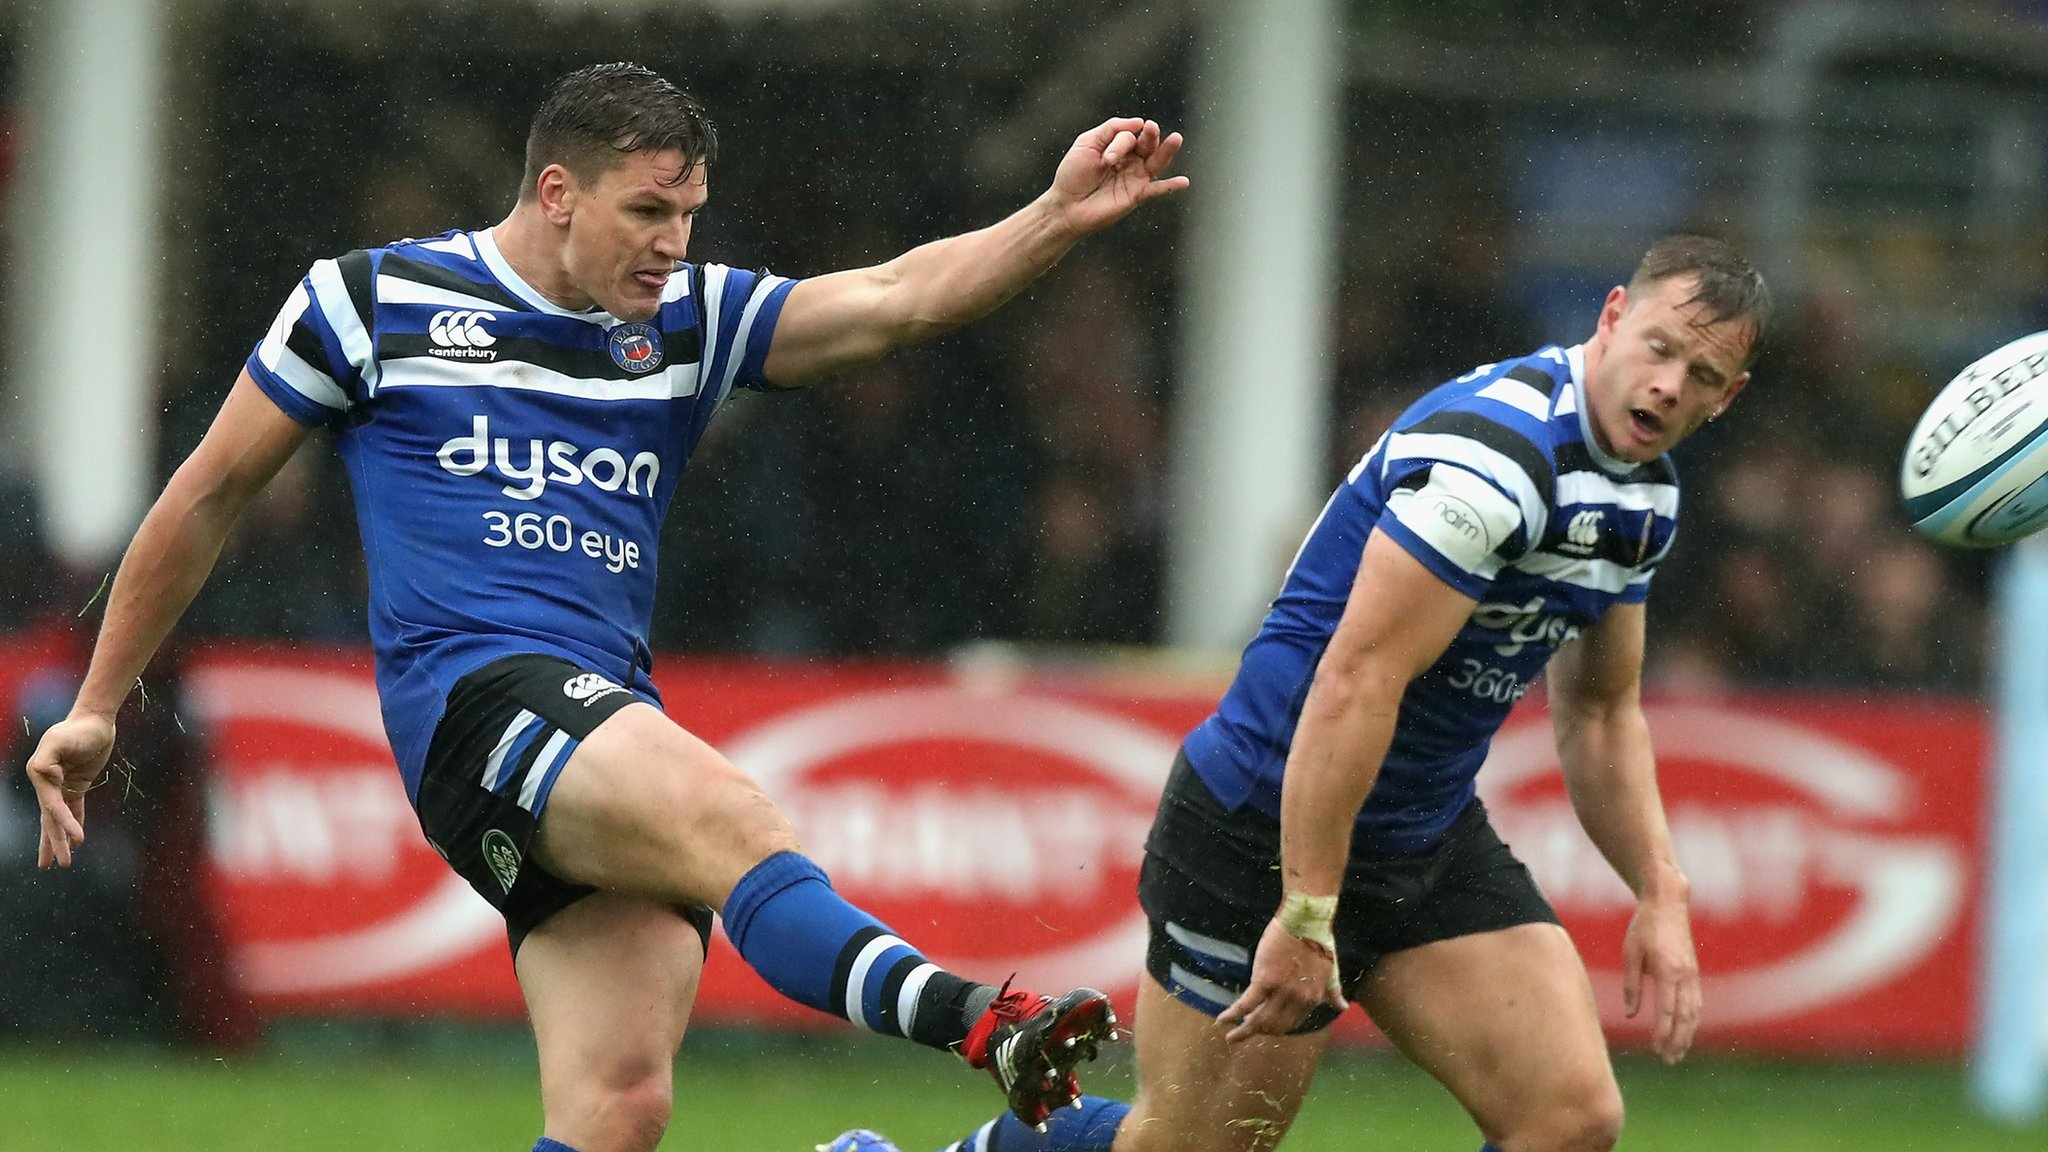 Premiership: Bath 17-15 Northampton Saints